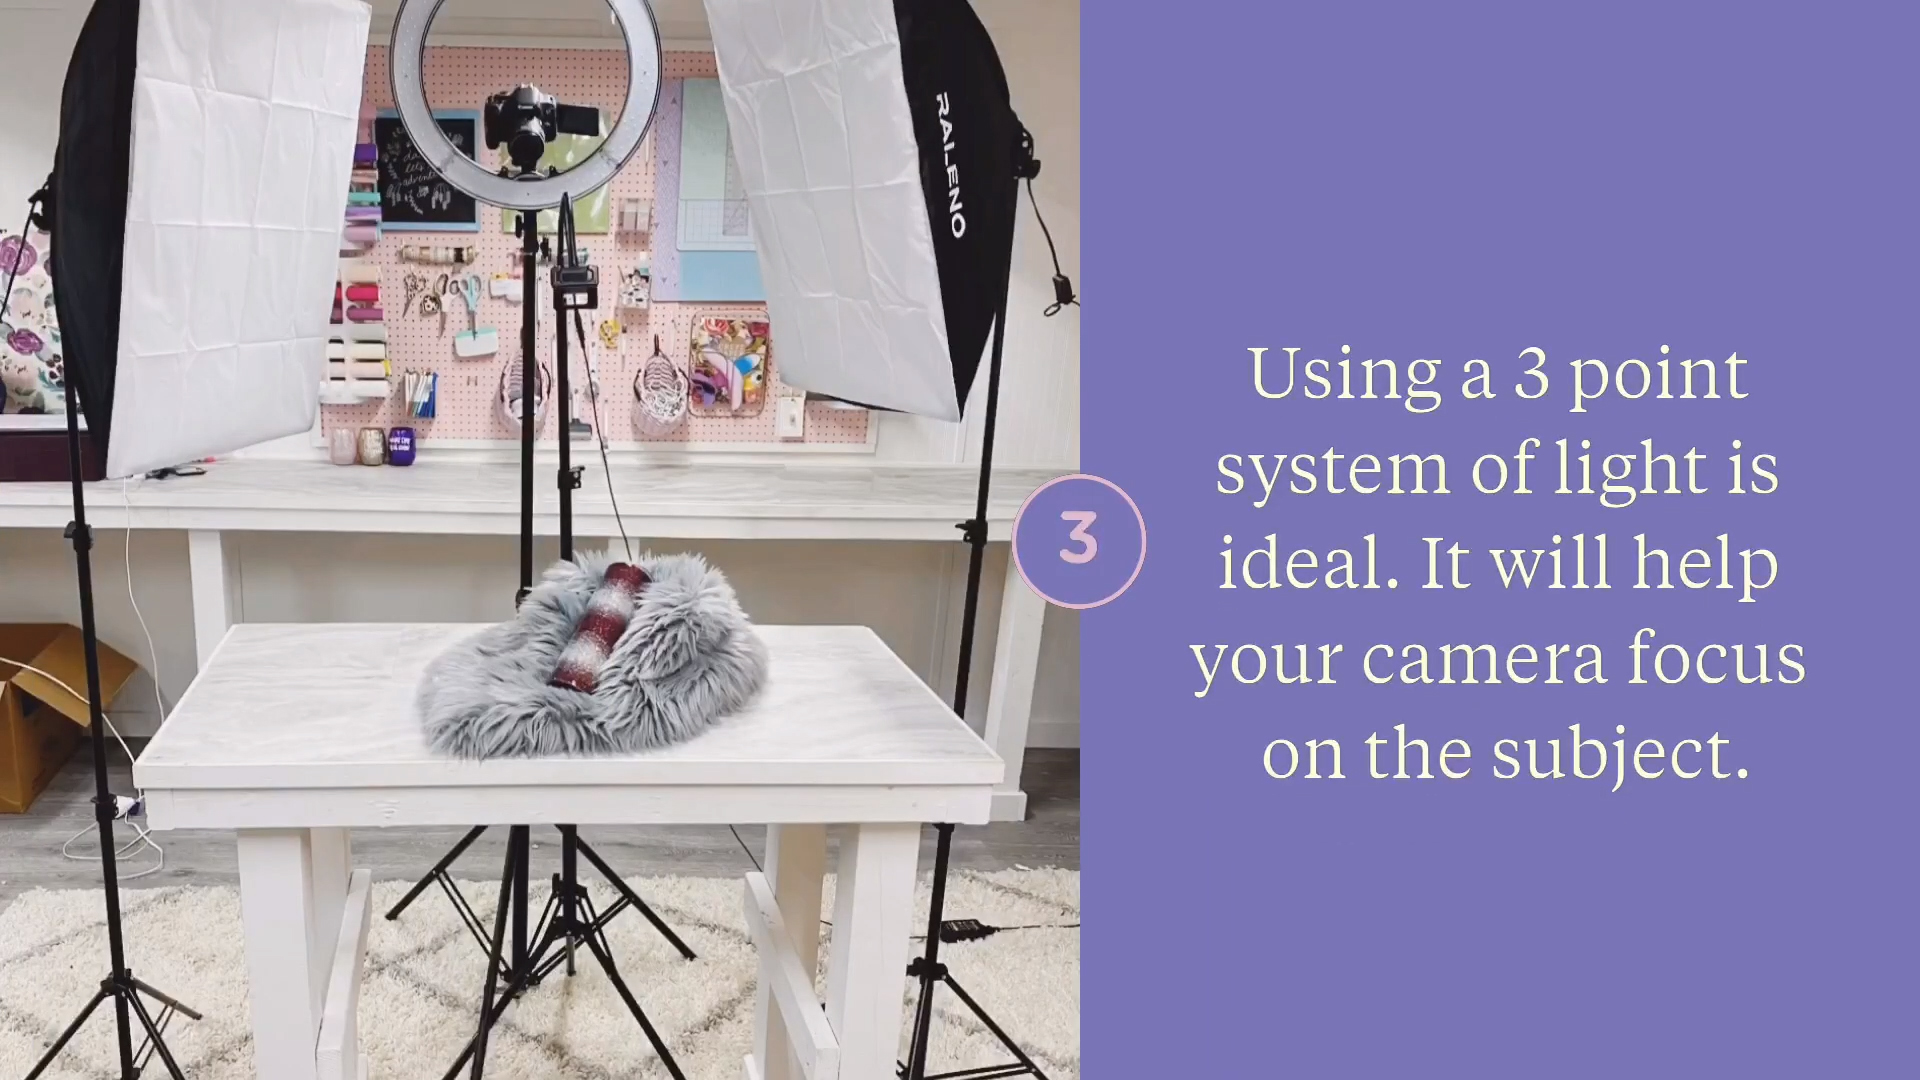 Use a three point lighting system beginner lighting tips for photo and video